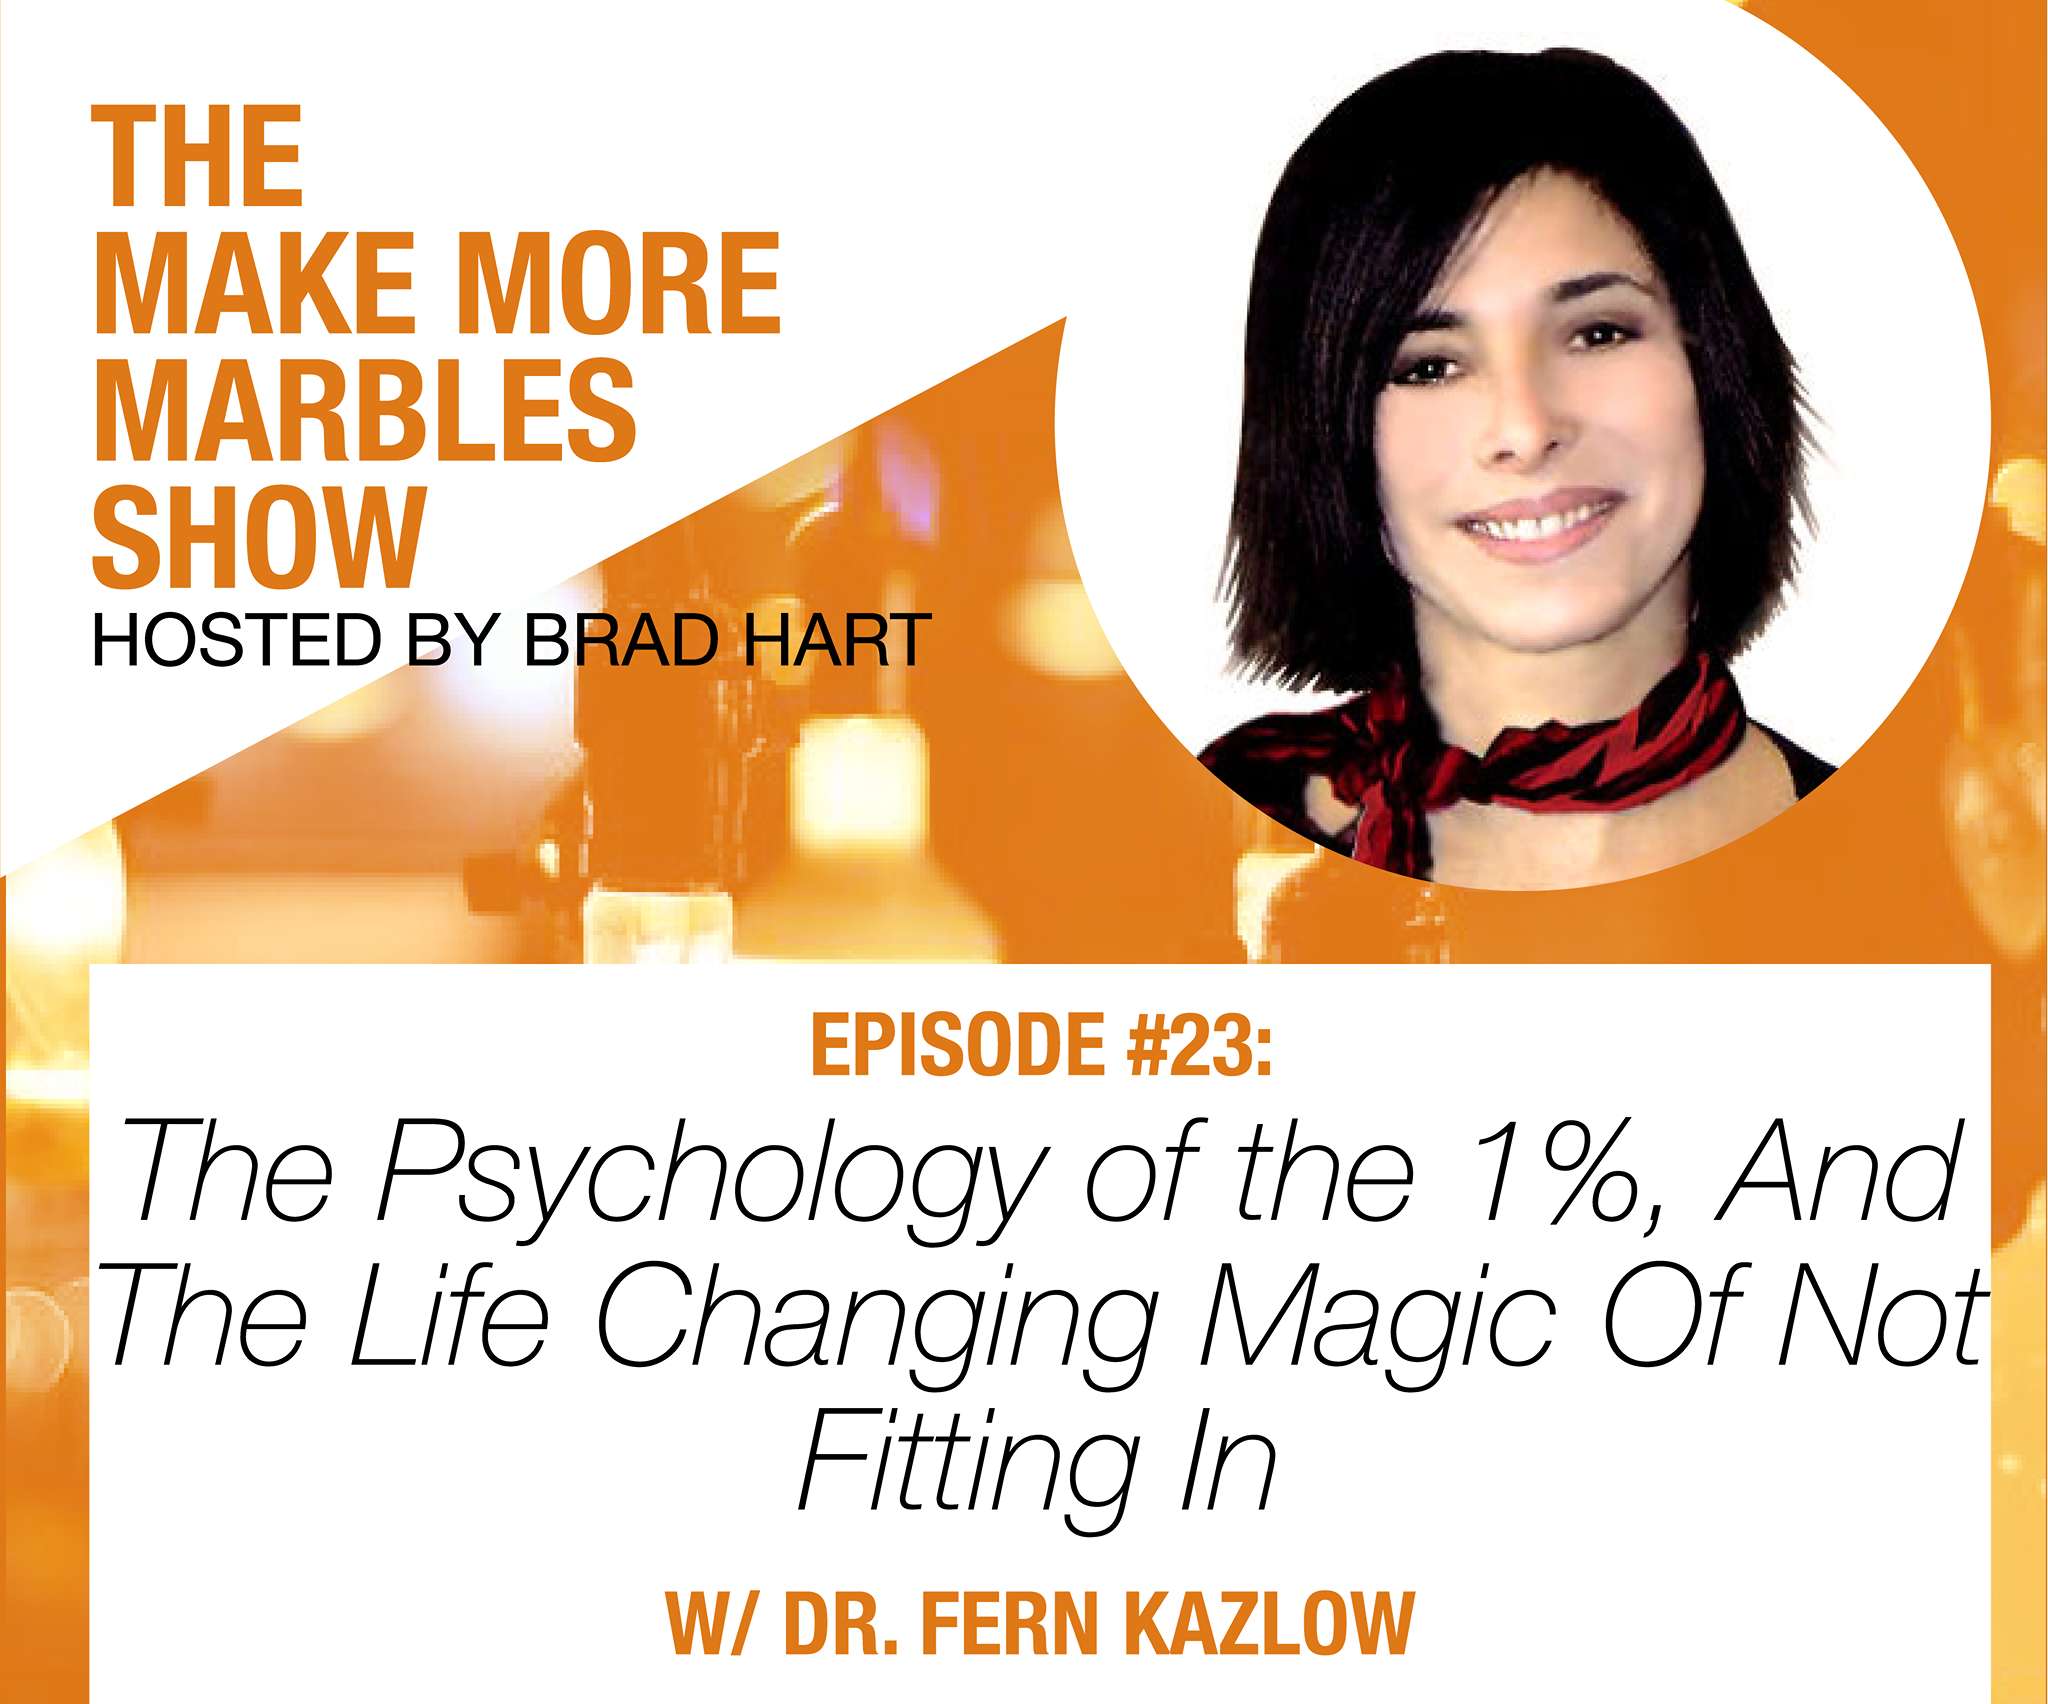 The Psychology Of The 1% And The Life Changing Magic Of Not Fitting In!